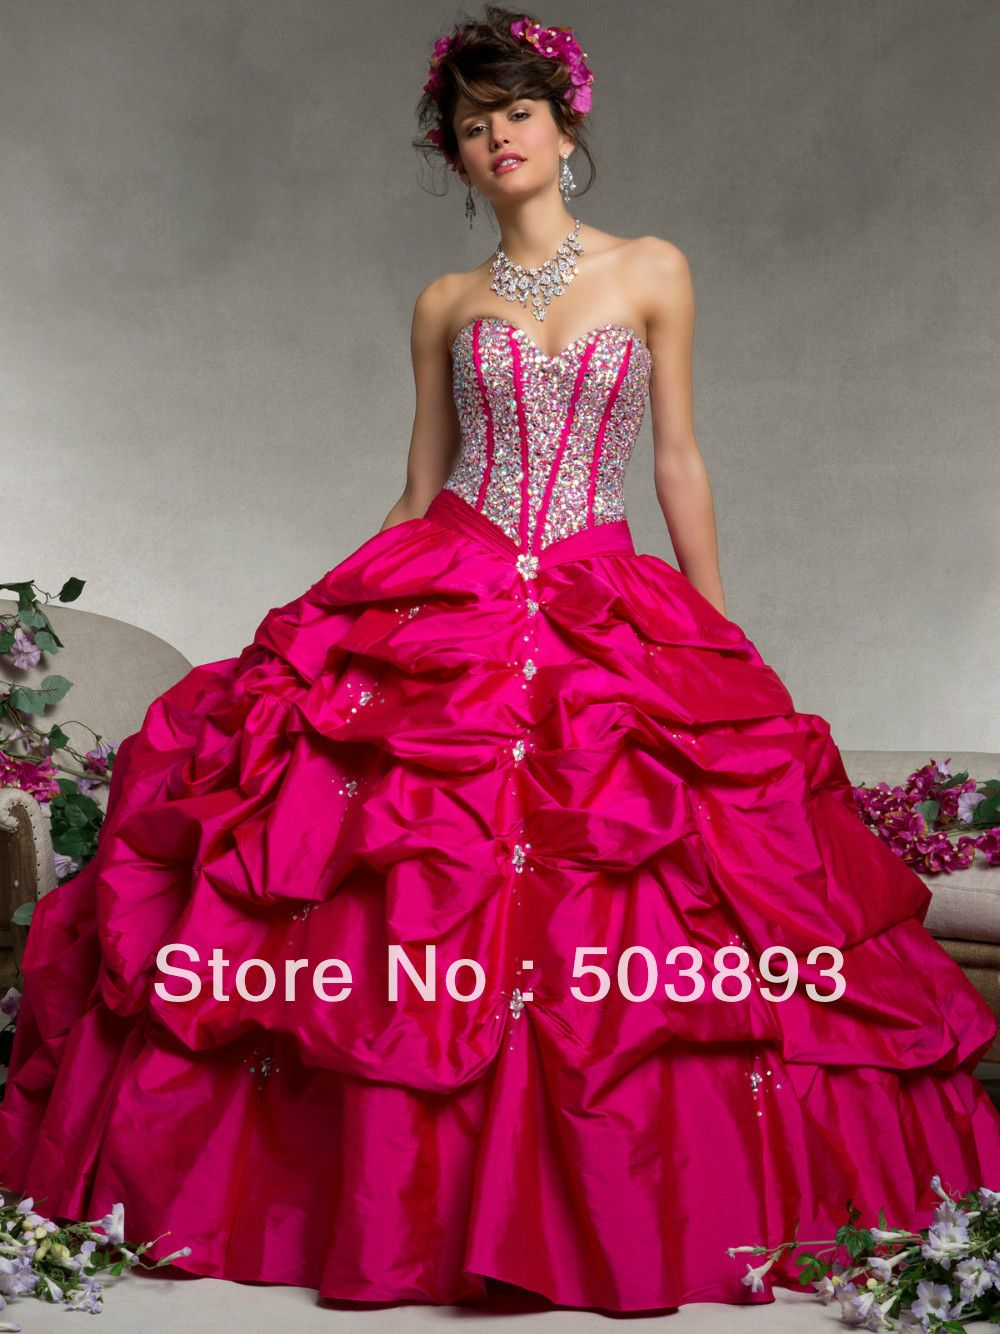 Free-shipping-masquerade-ball-gowns-crystal-hot-pink-quinceanera ...